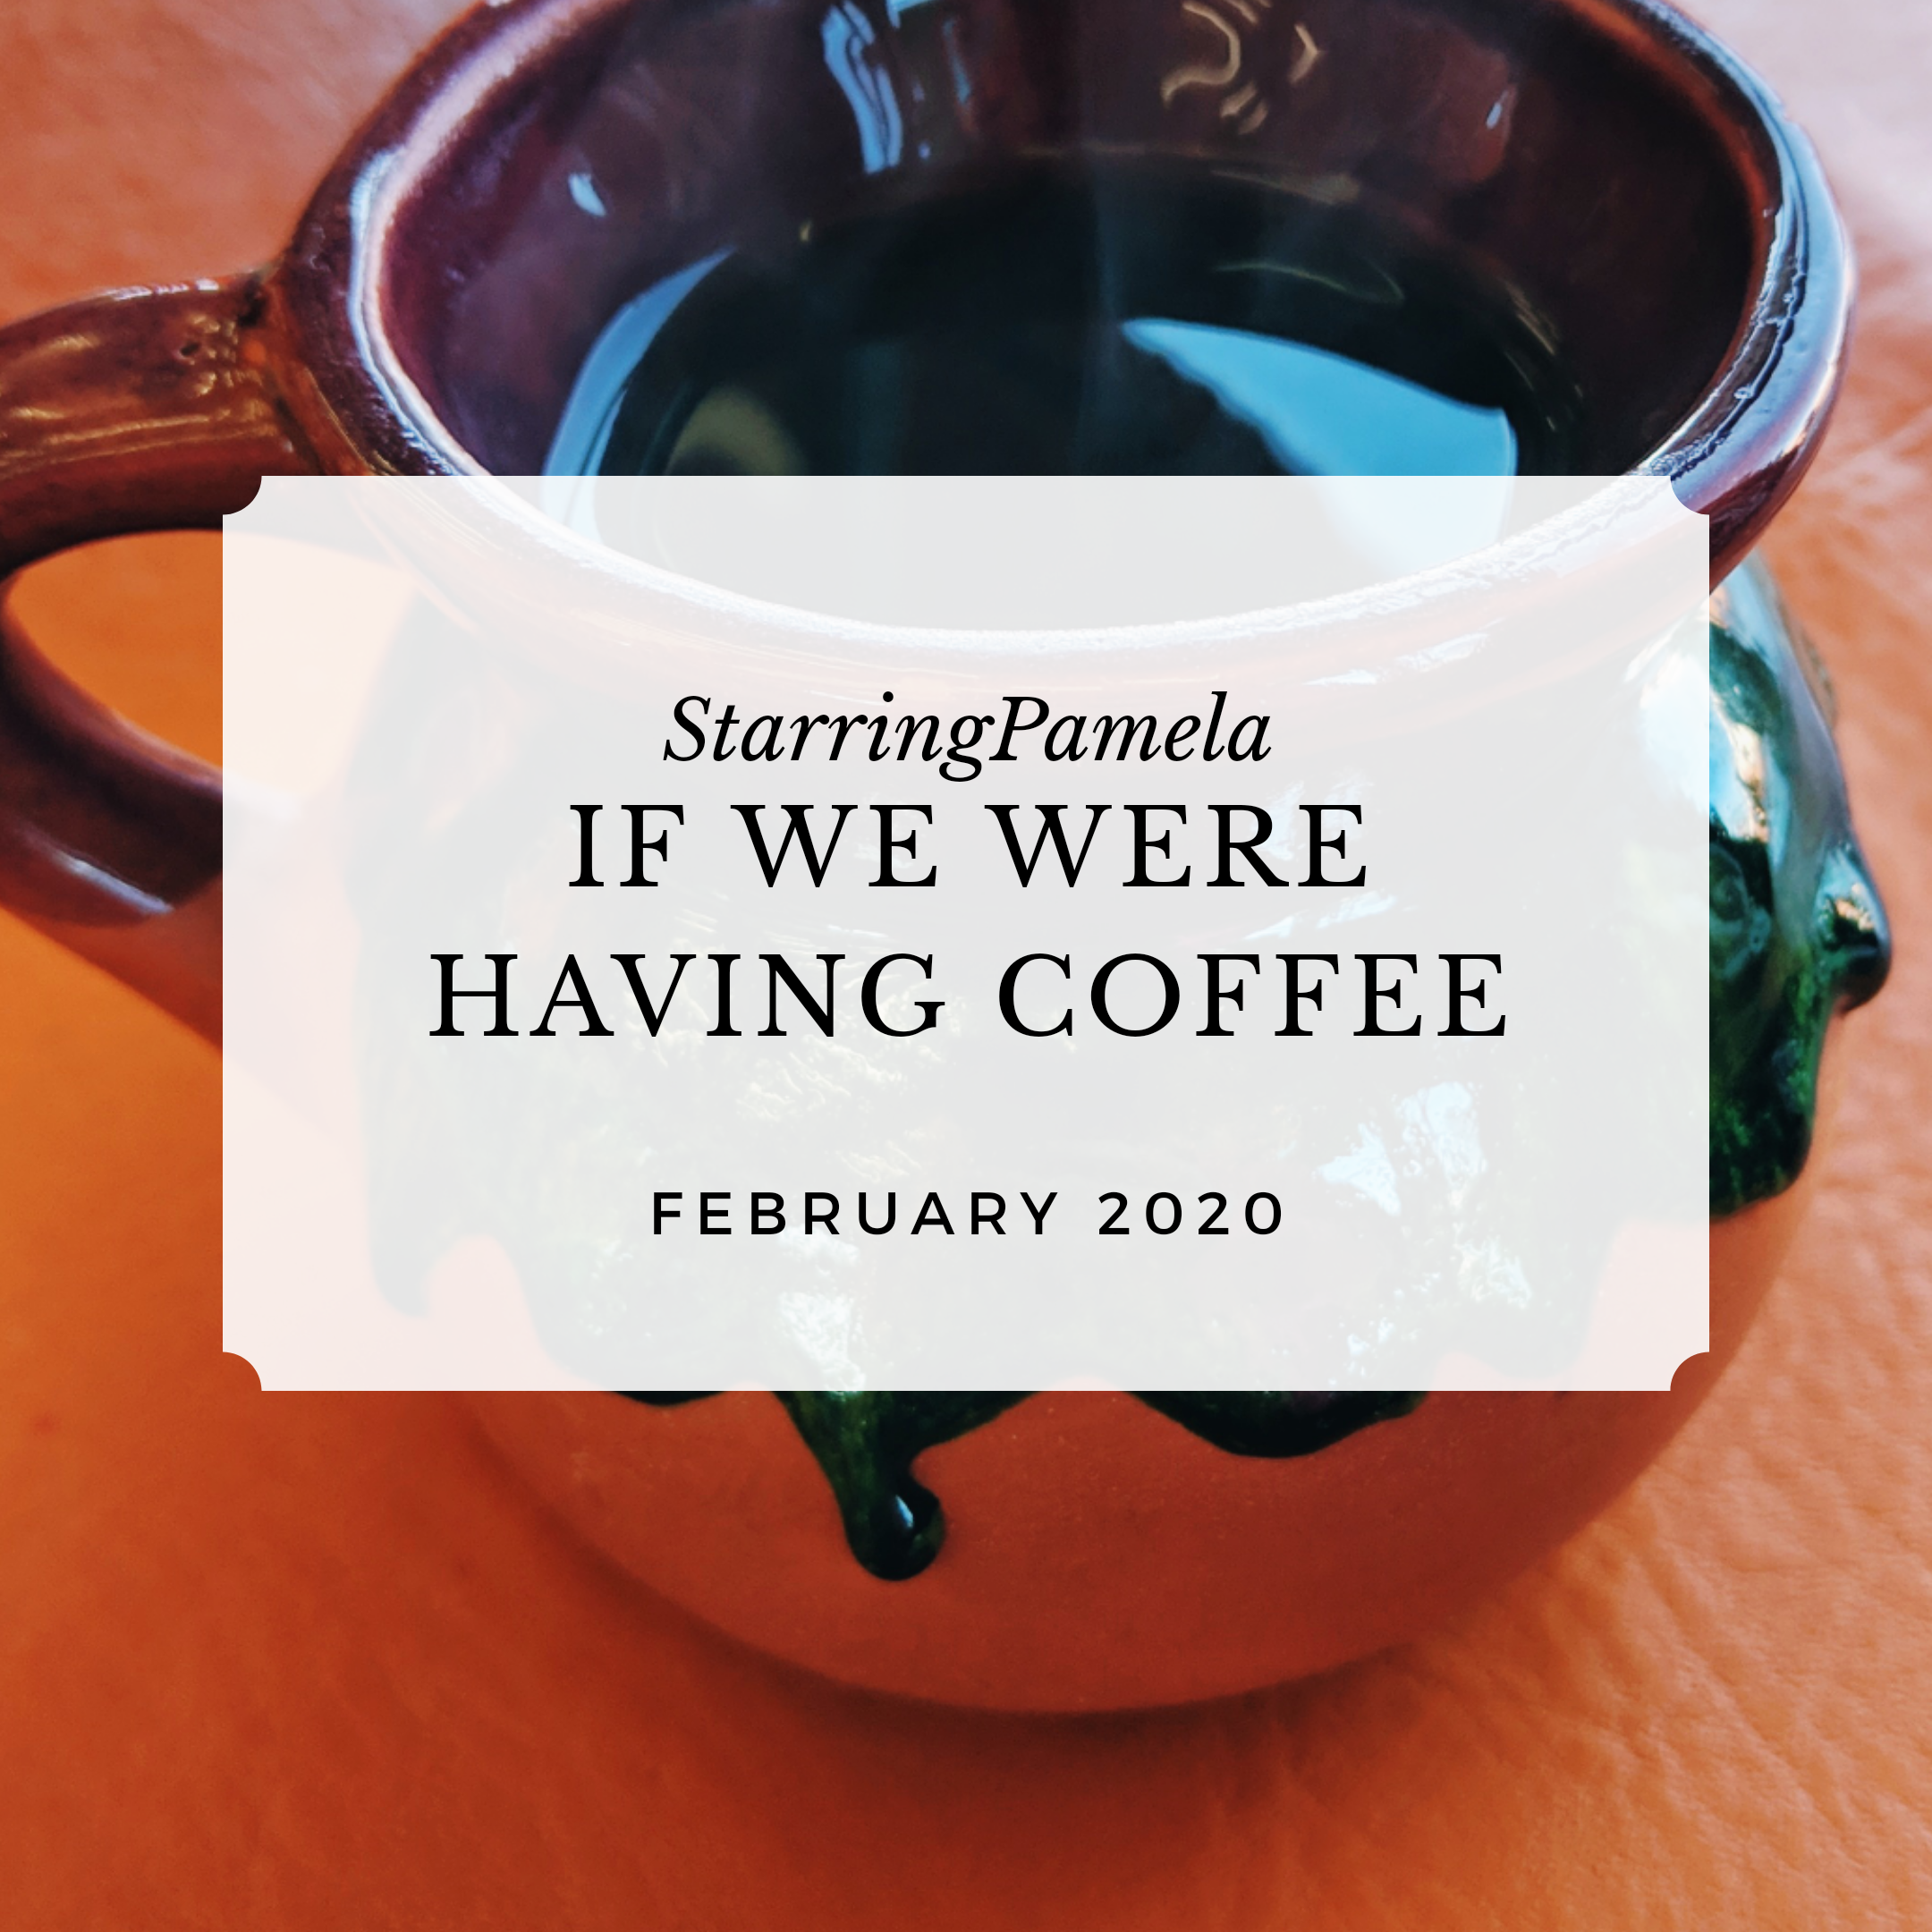 if we were having coffee february 2020 featured image